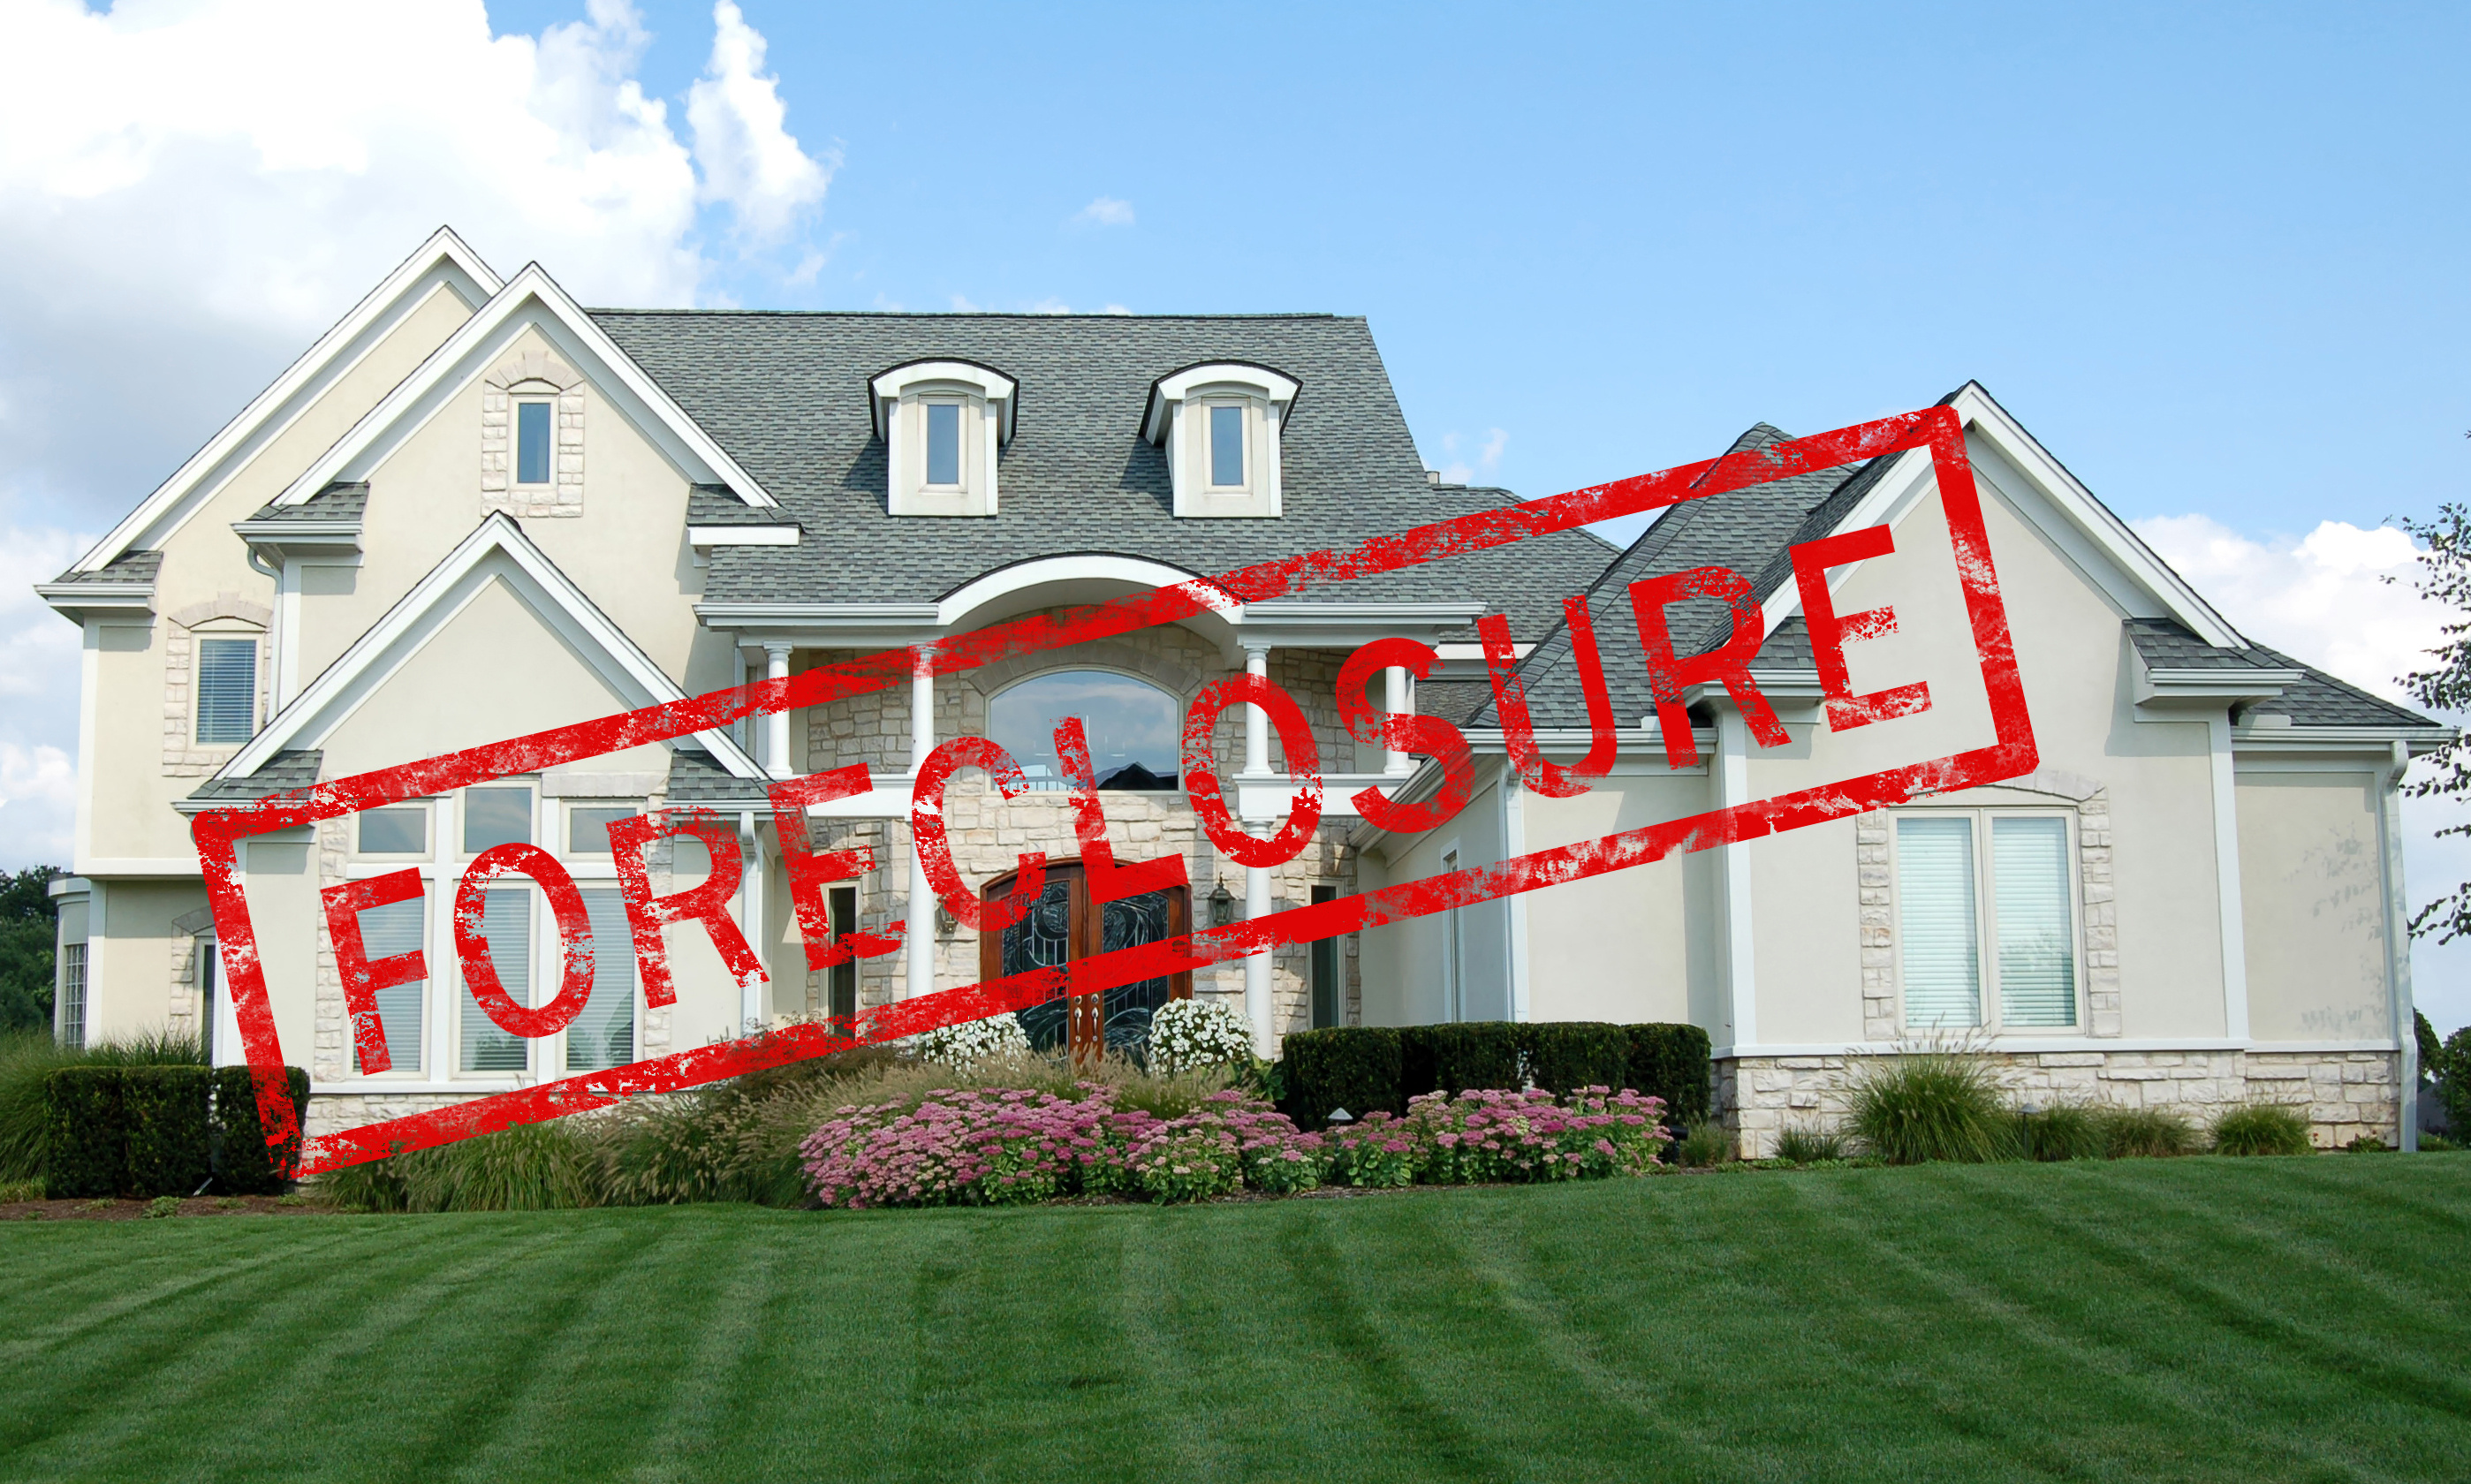 Call Gold Coast Appraisal Group LLC when you need appraisals on Bergen foreclosures